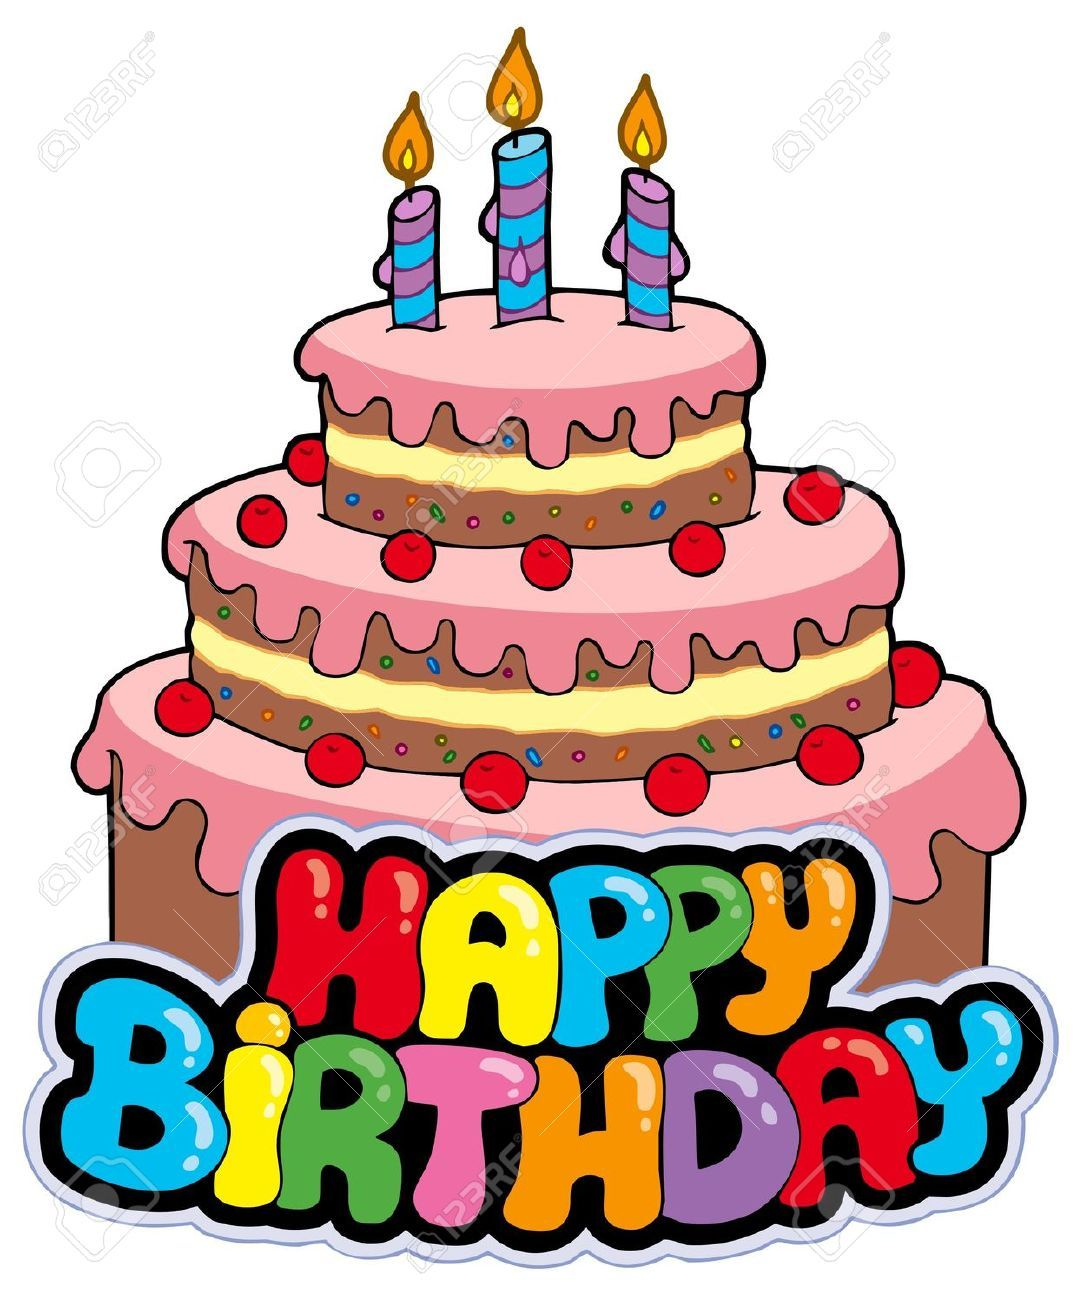 wishing a very happy birthday to diana gabaldon author of the rh pinterest co uk romantic happy birthday cake clipart romantic happy birthday cake clipart